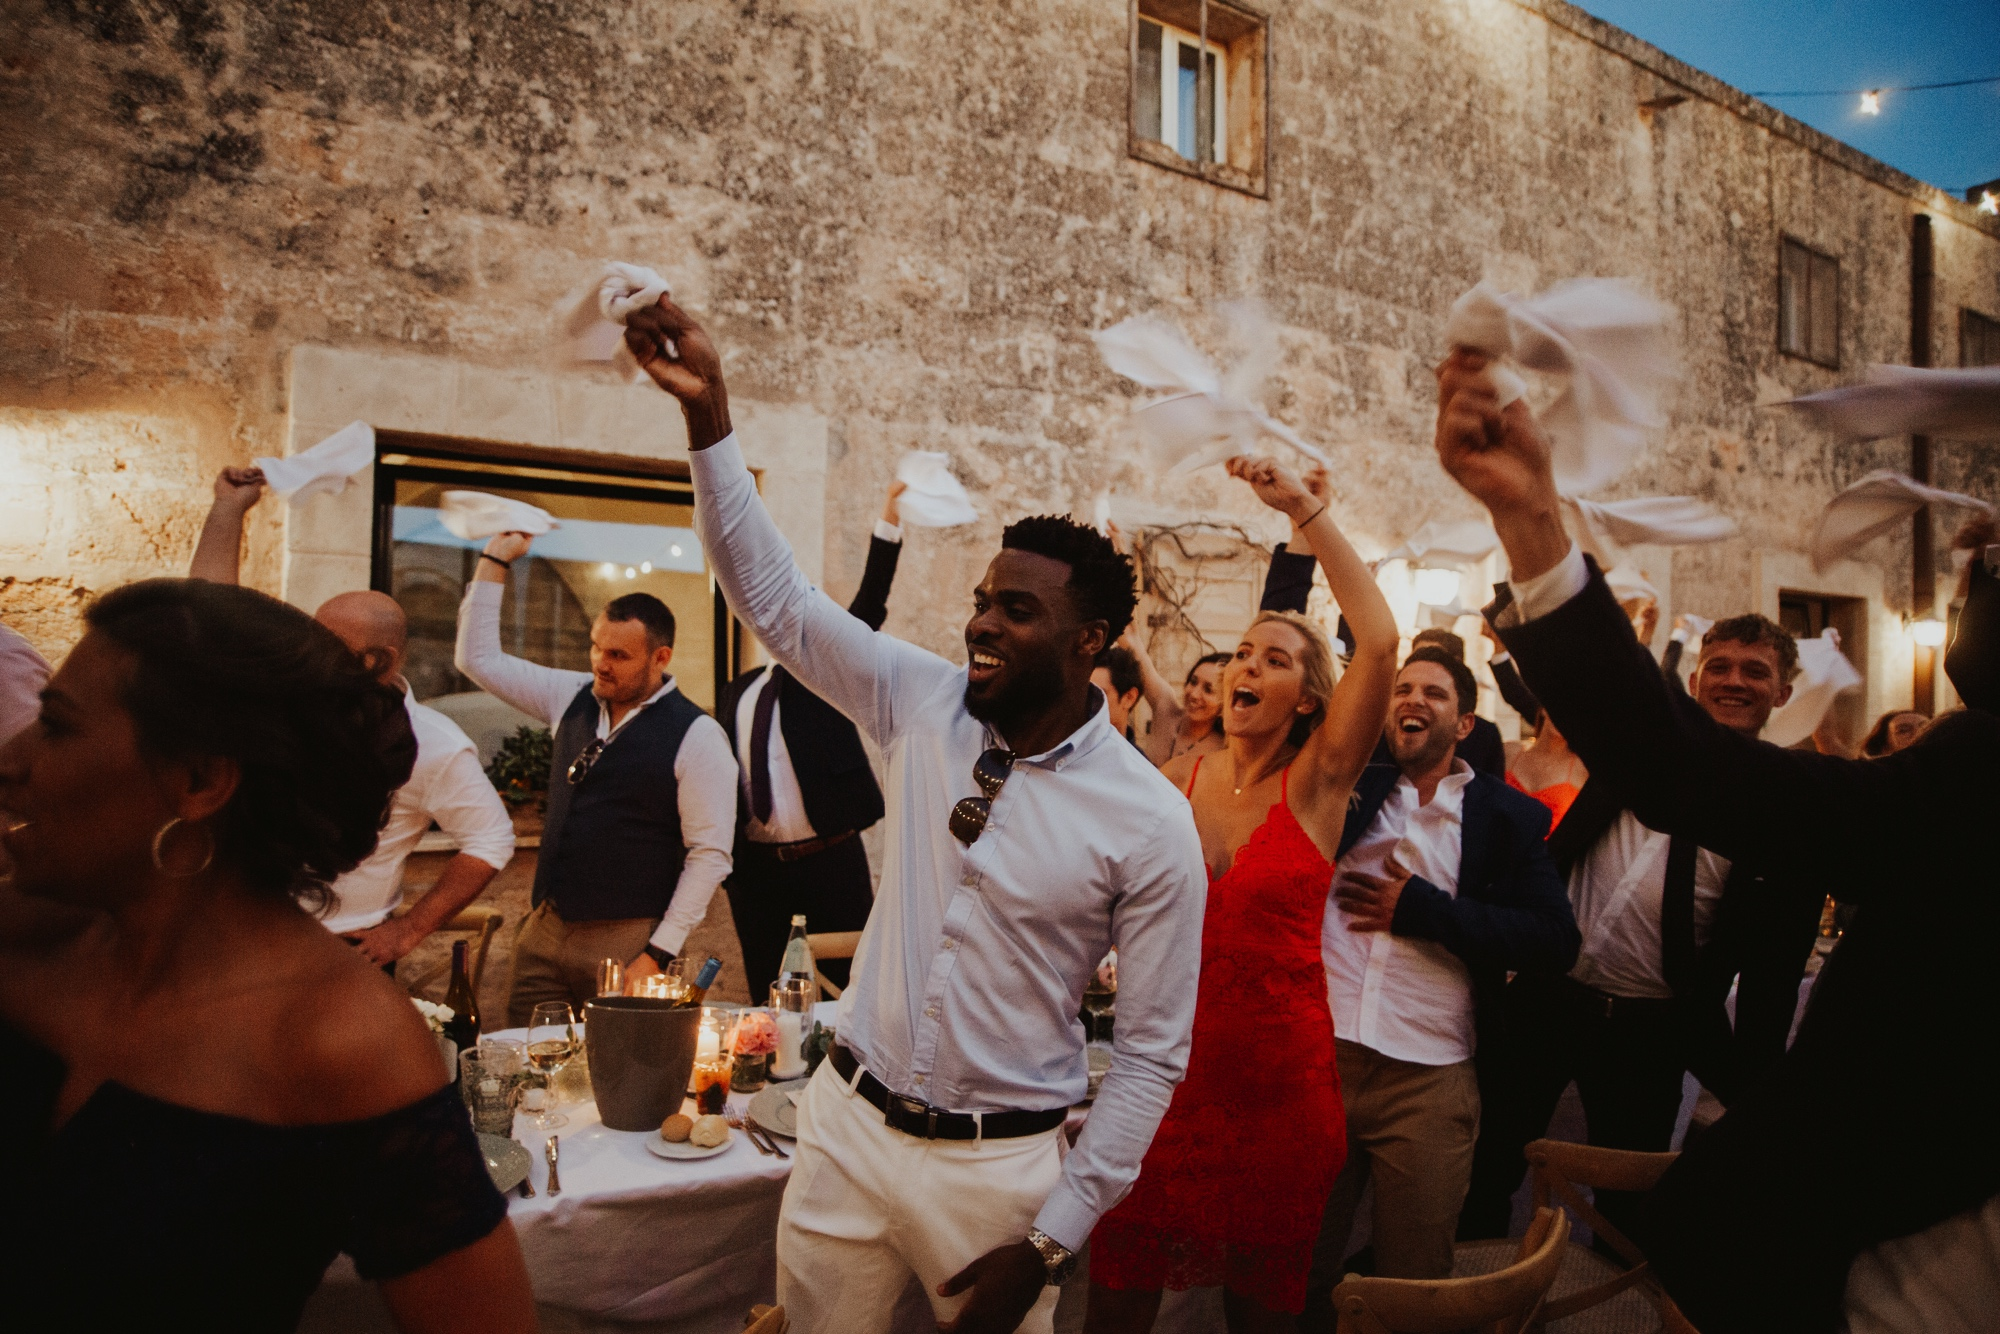 0000000071_Rob and Lucy-791_Weddings_Destination_Italy_got_Just_Engaged.jpg